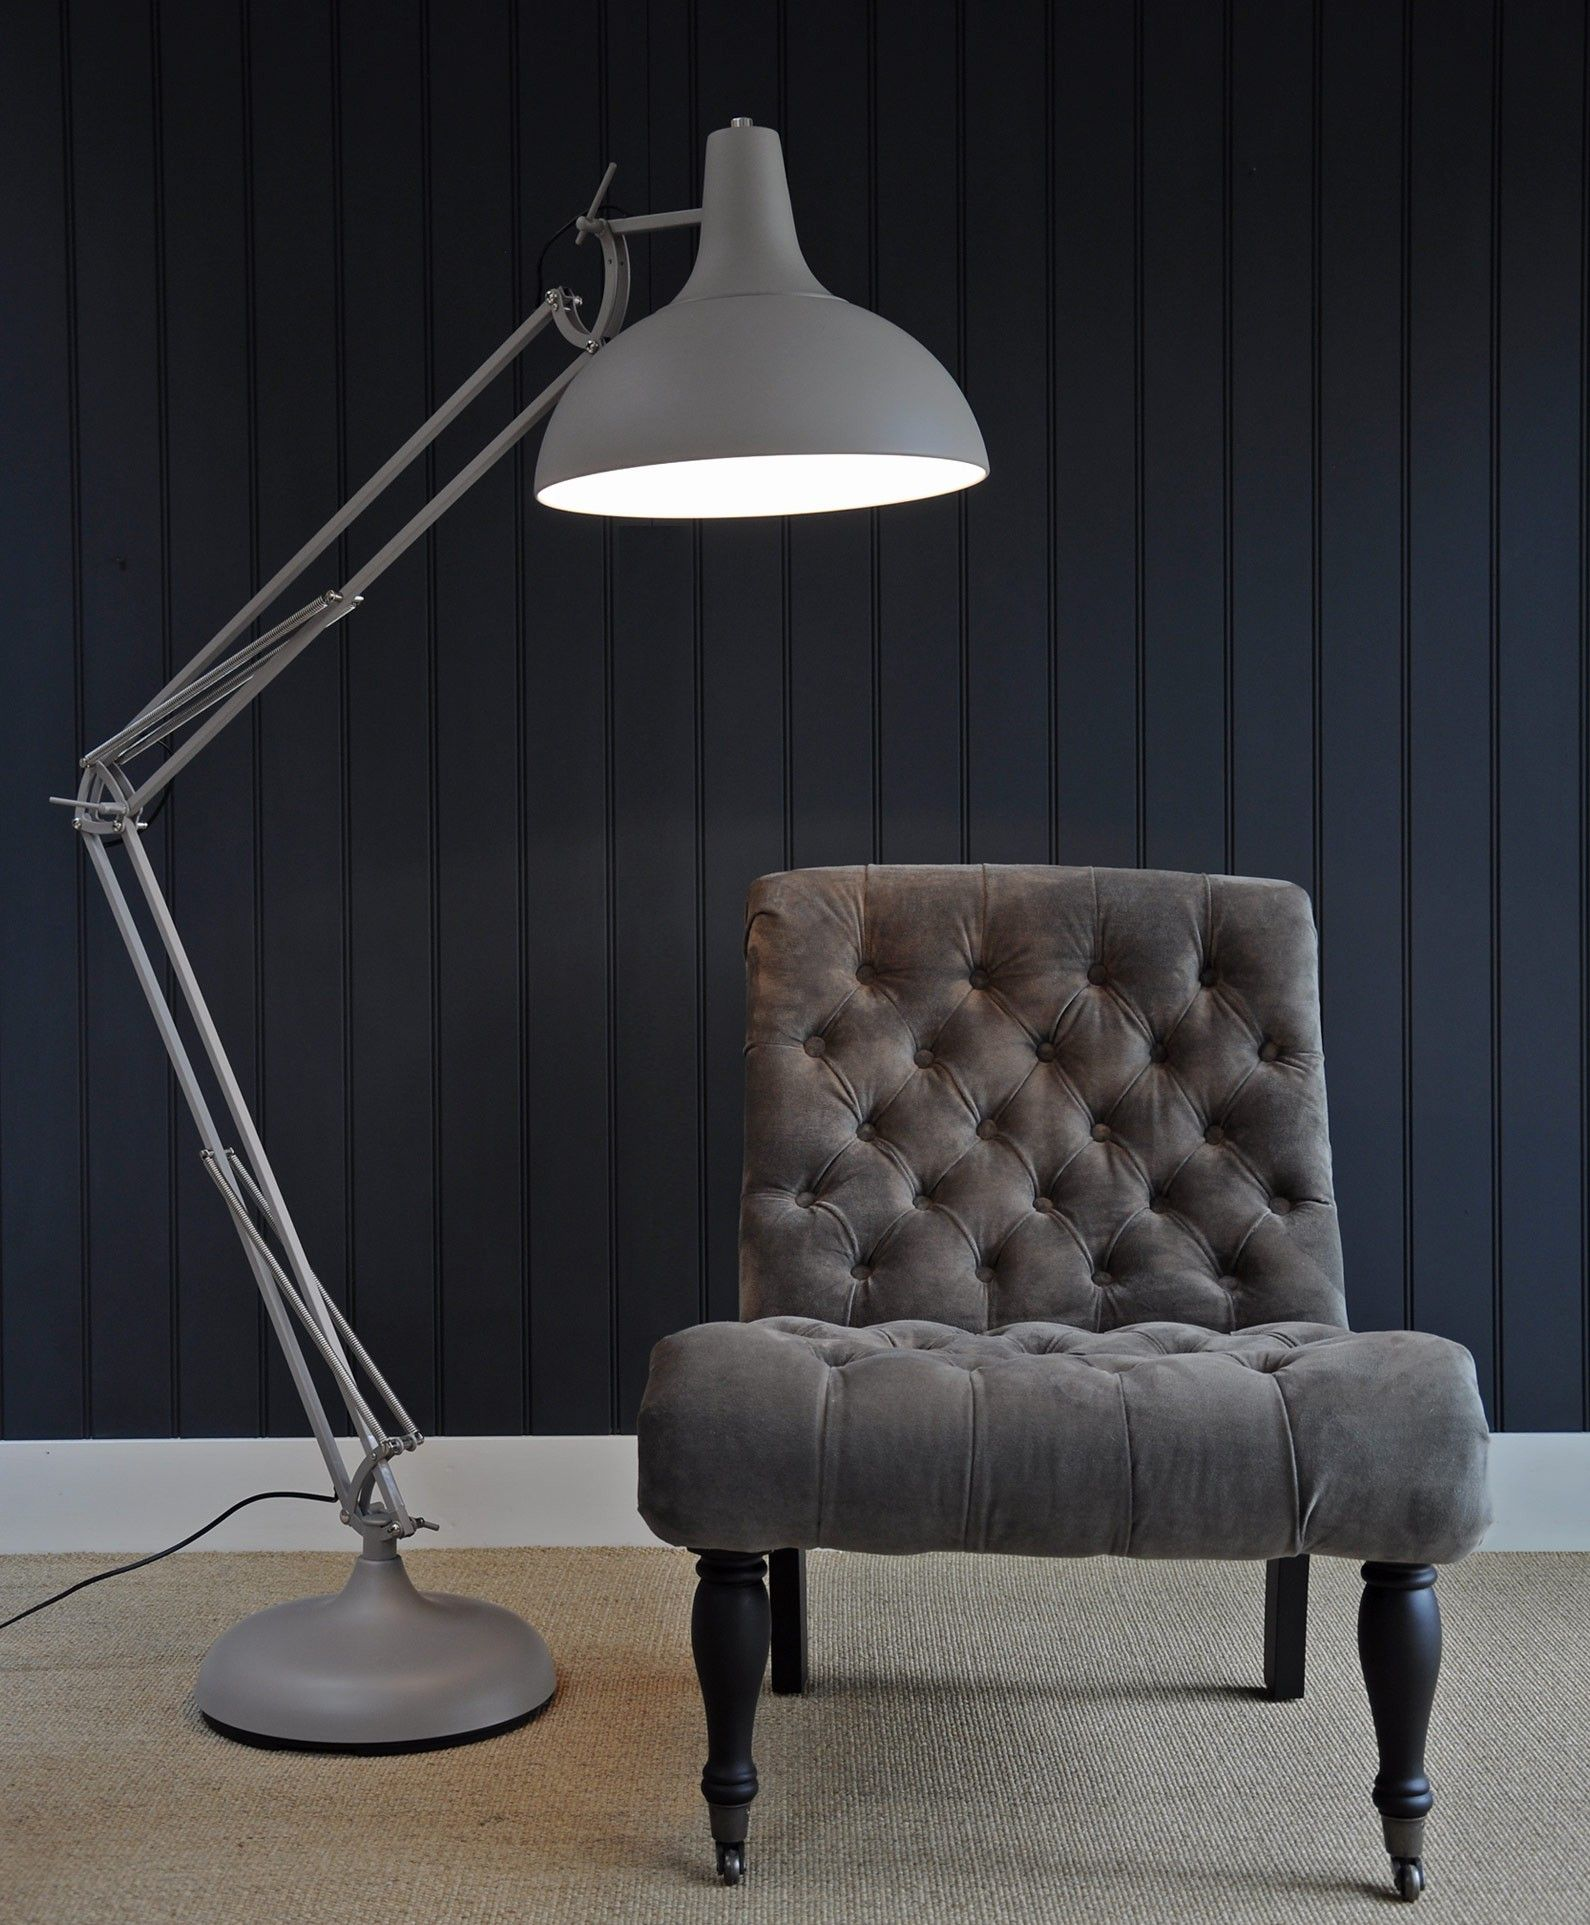 Oversized Floor Lamp i like this over-sized anglepoise floor lamp. | light | pinterest